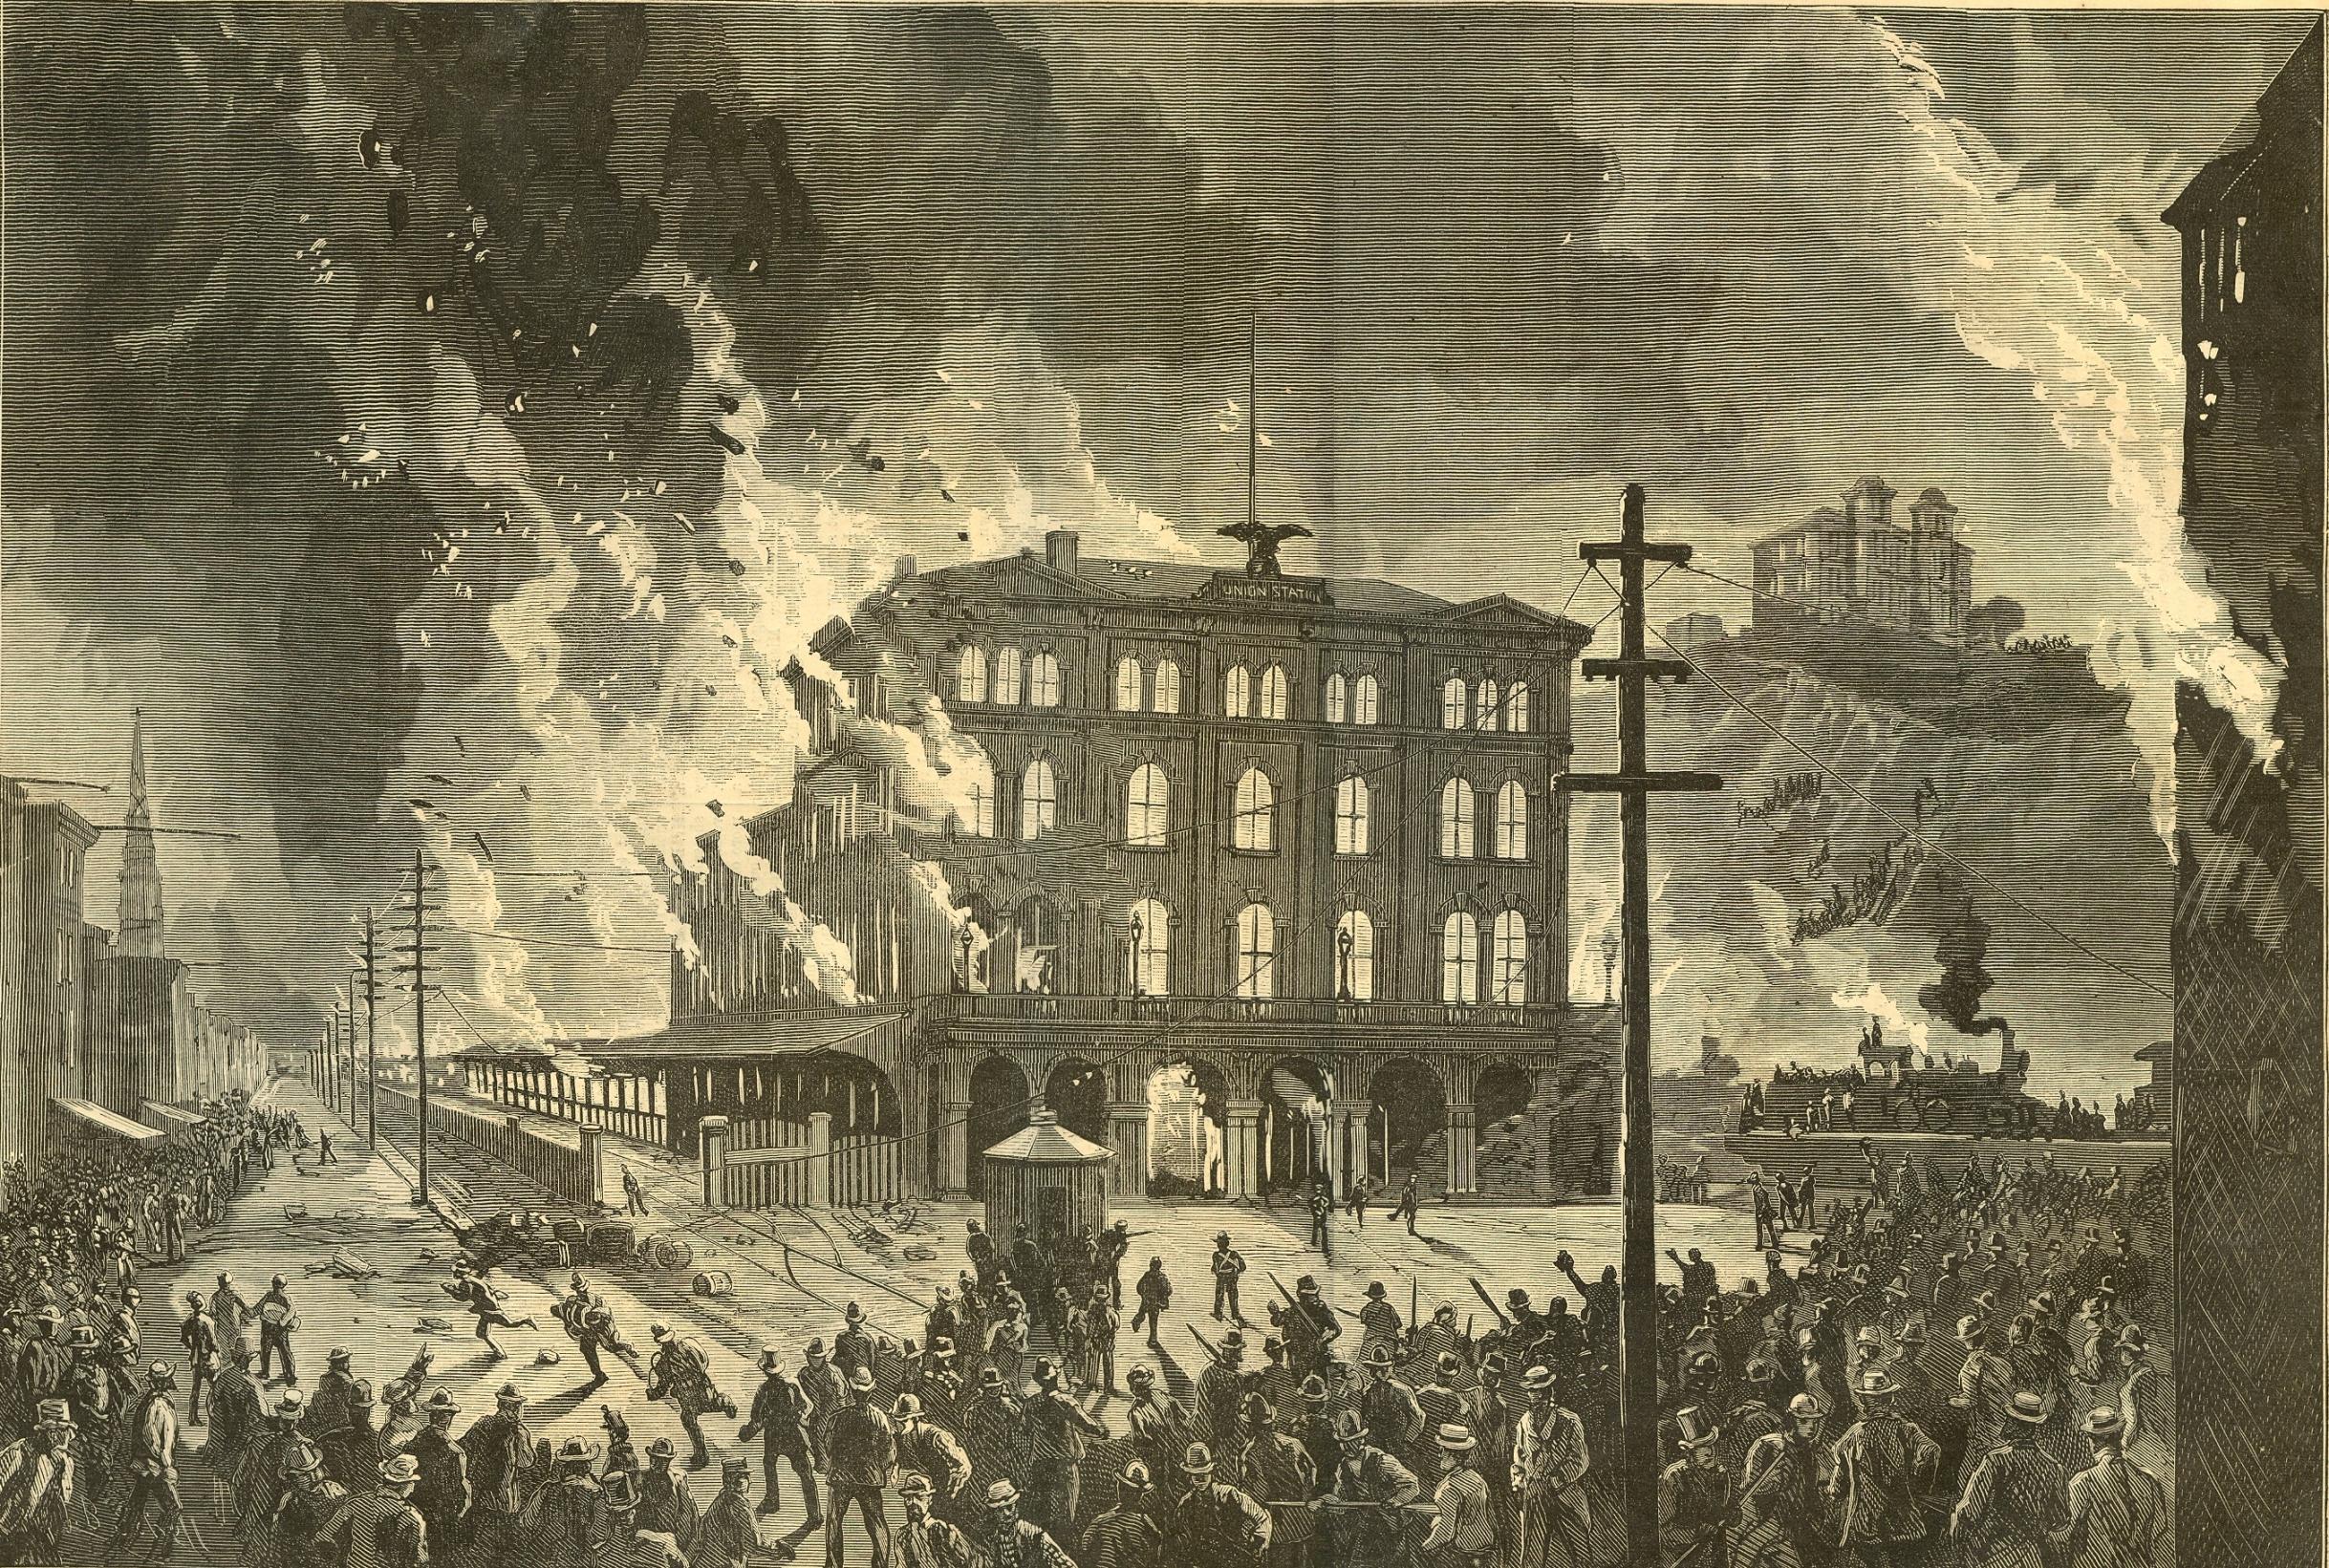 Destruction of the Union Depot, Pittsburg, August 11, 1877